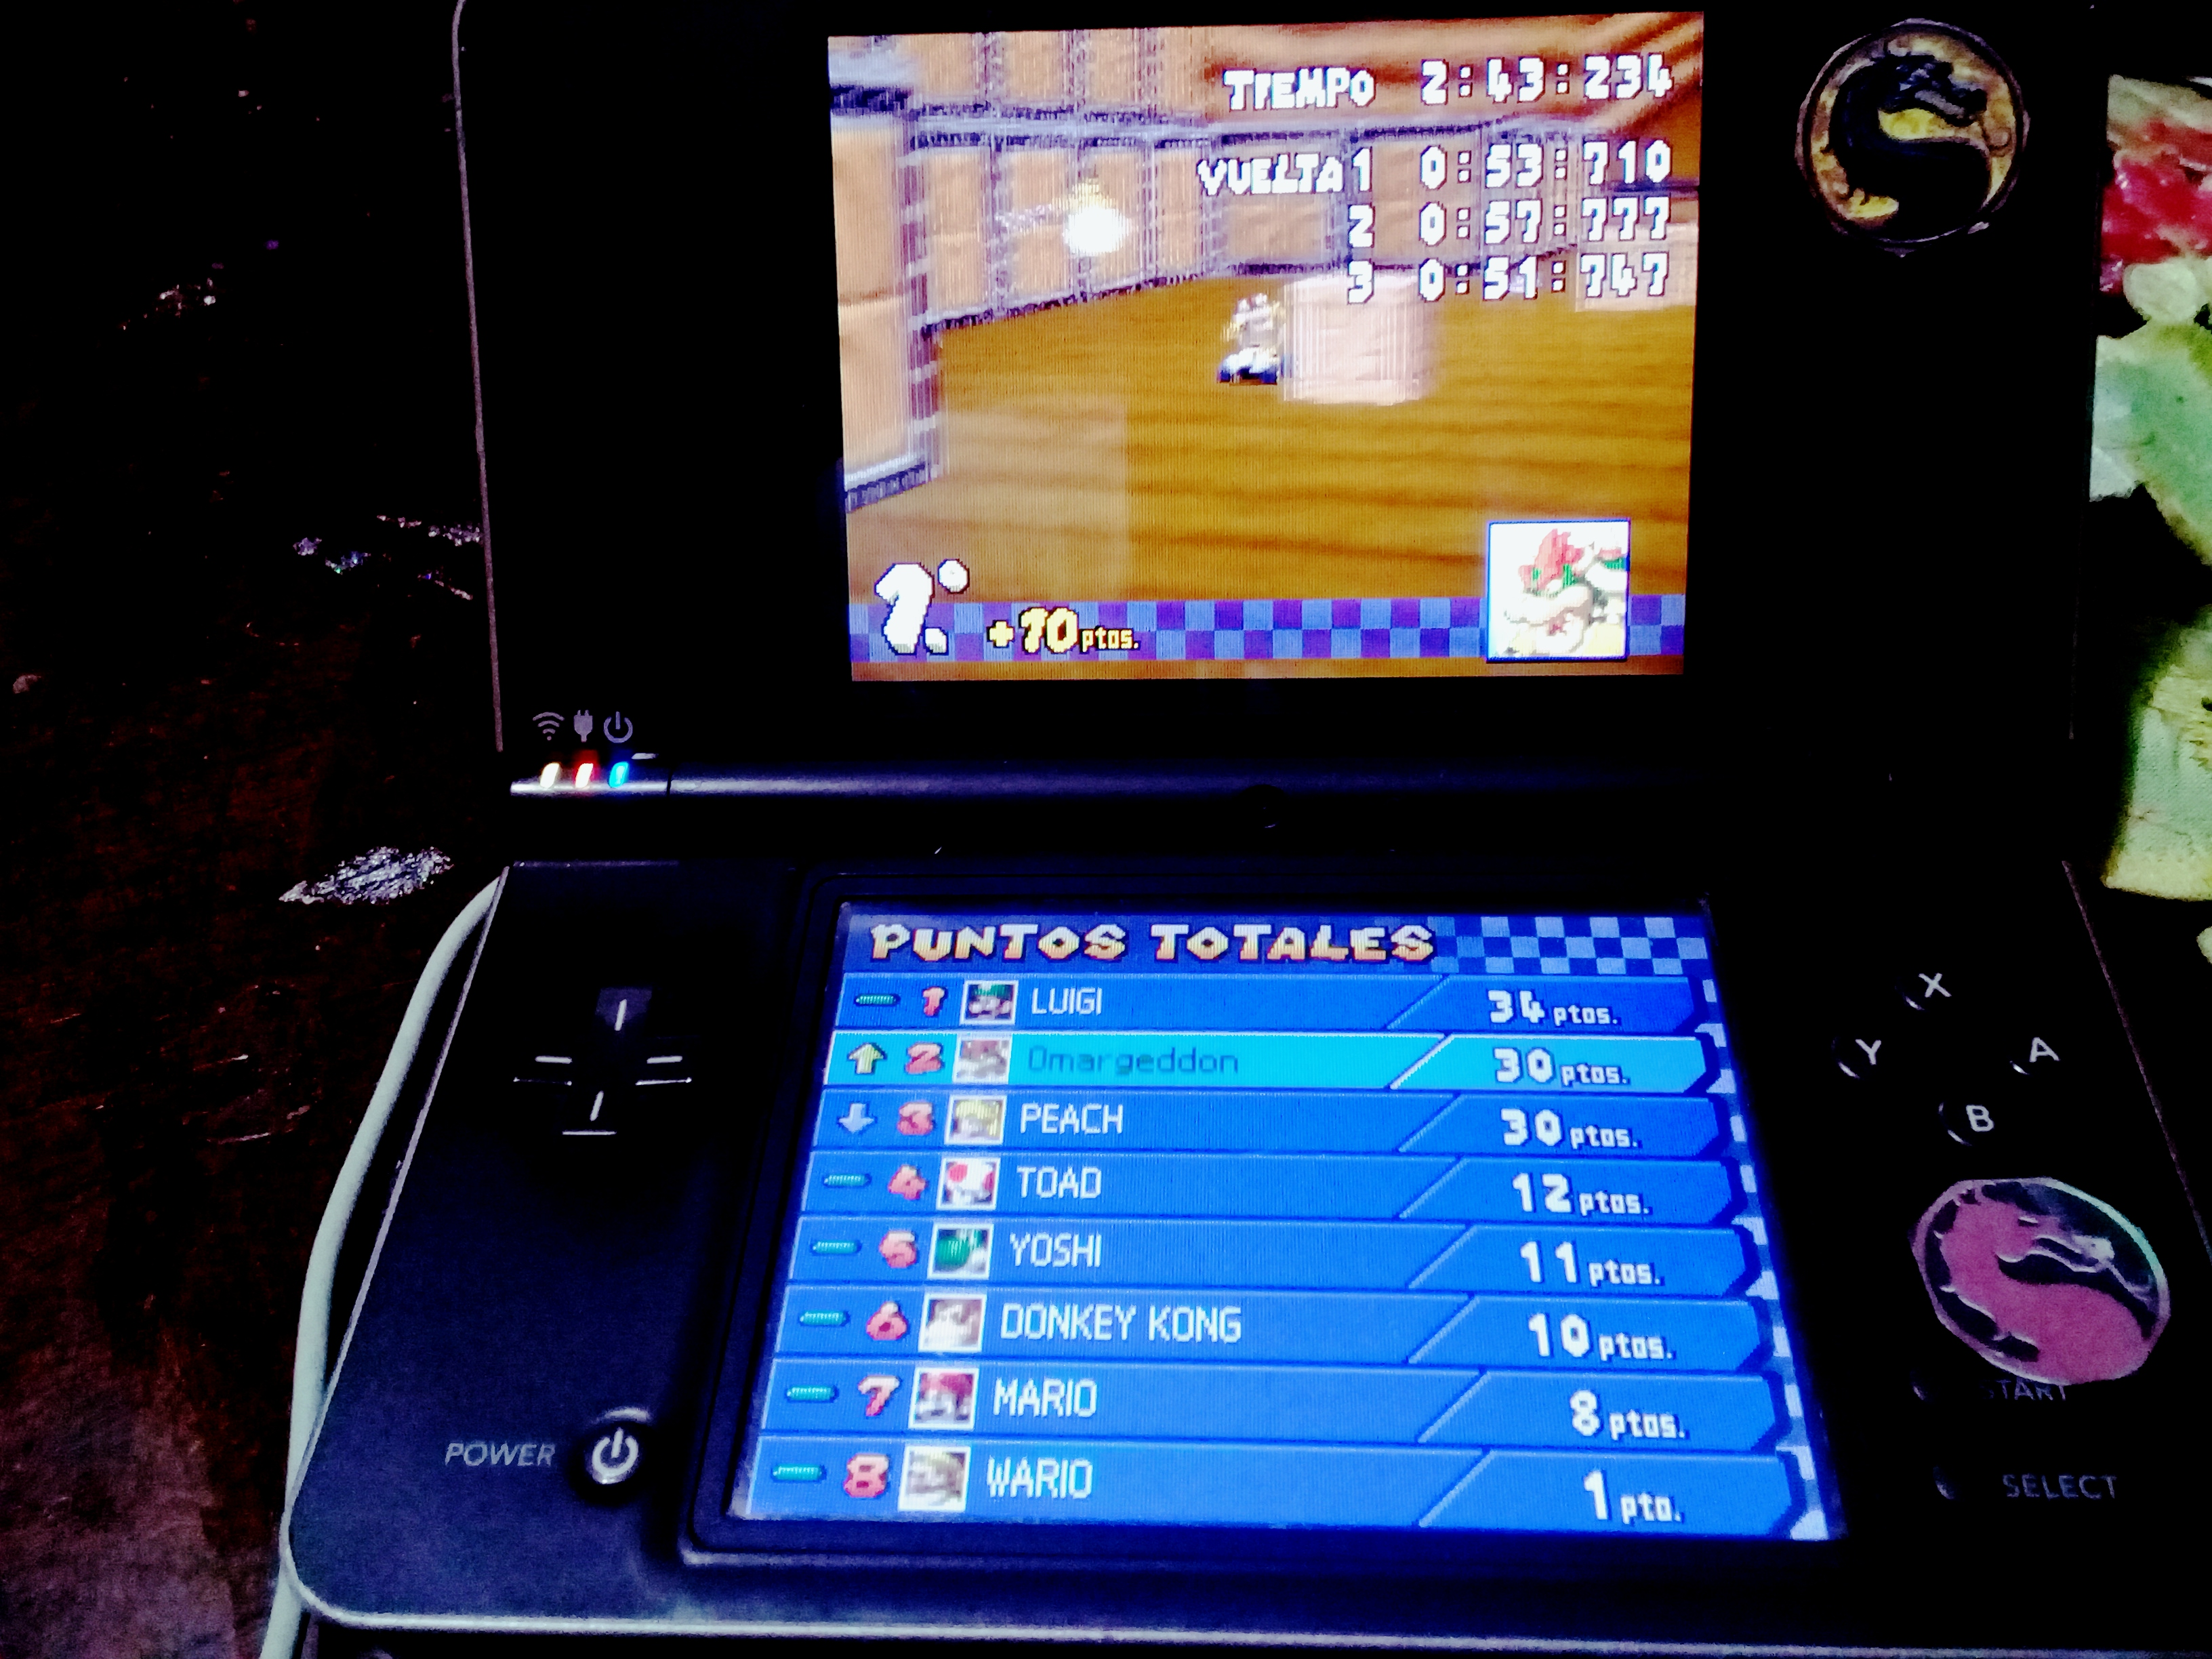 Mario Kart DS: Airship Fortress [100cc] [Lap Time] time of 0:00:51.747